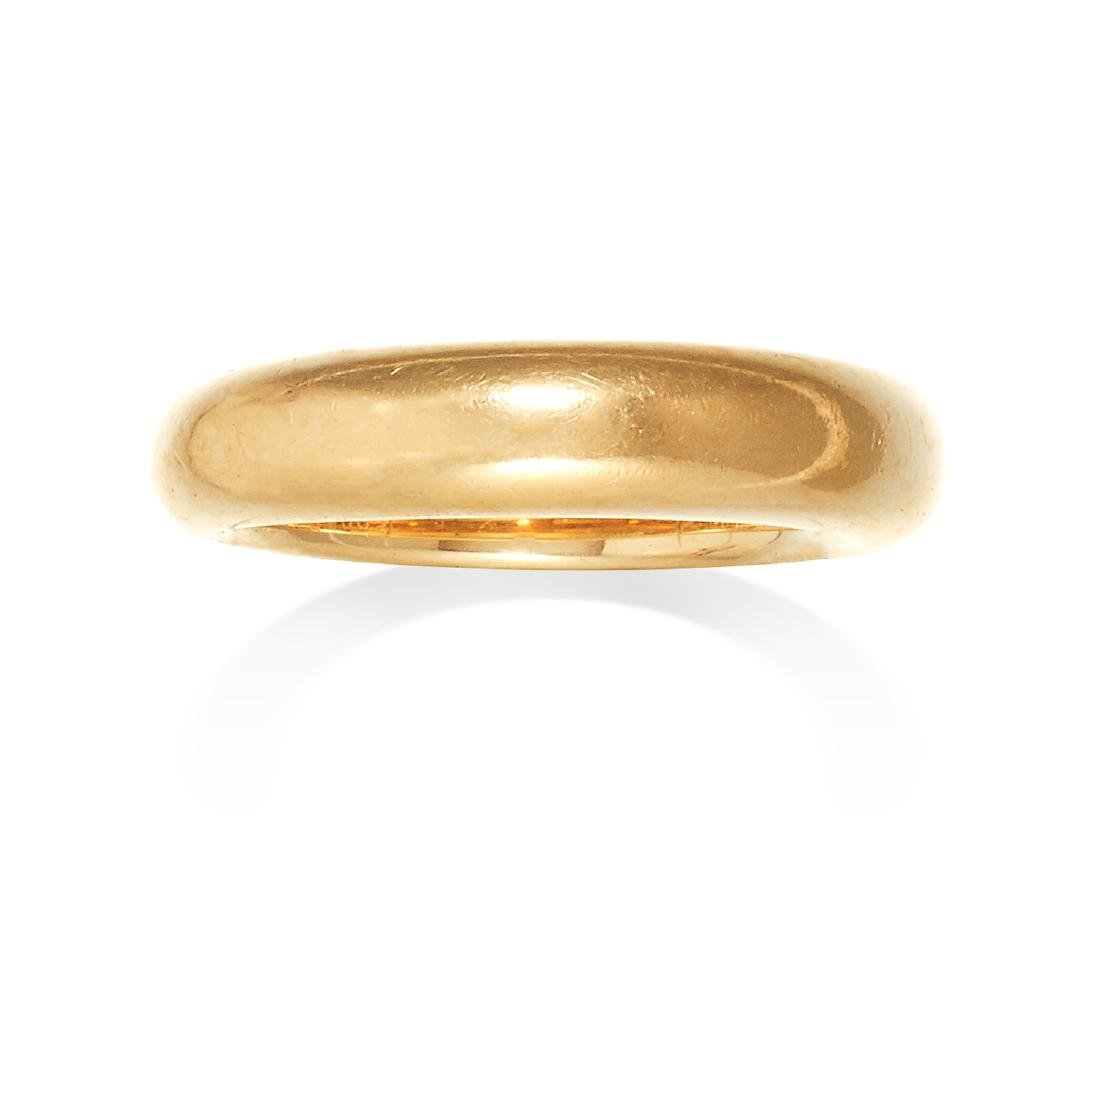 A GOLD RING, CARTIER in 18ct yellow gold, designed as